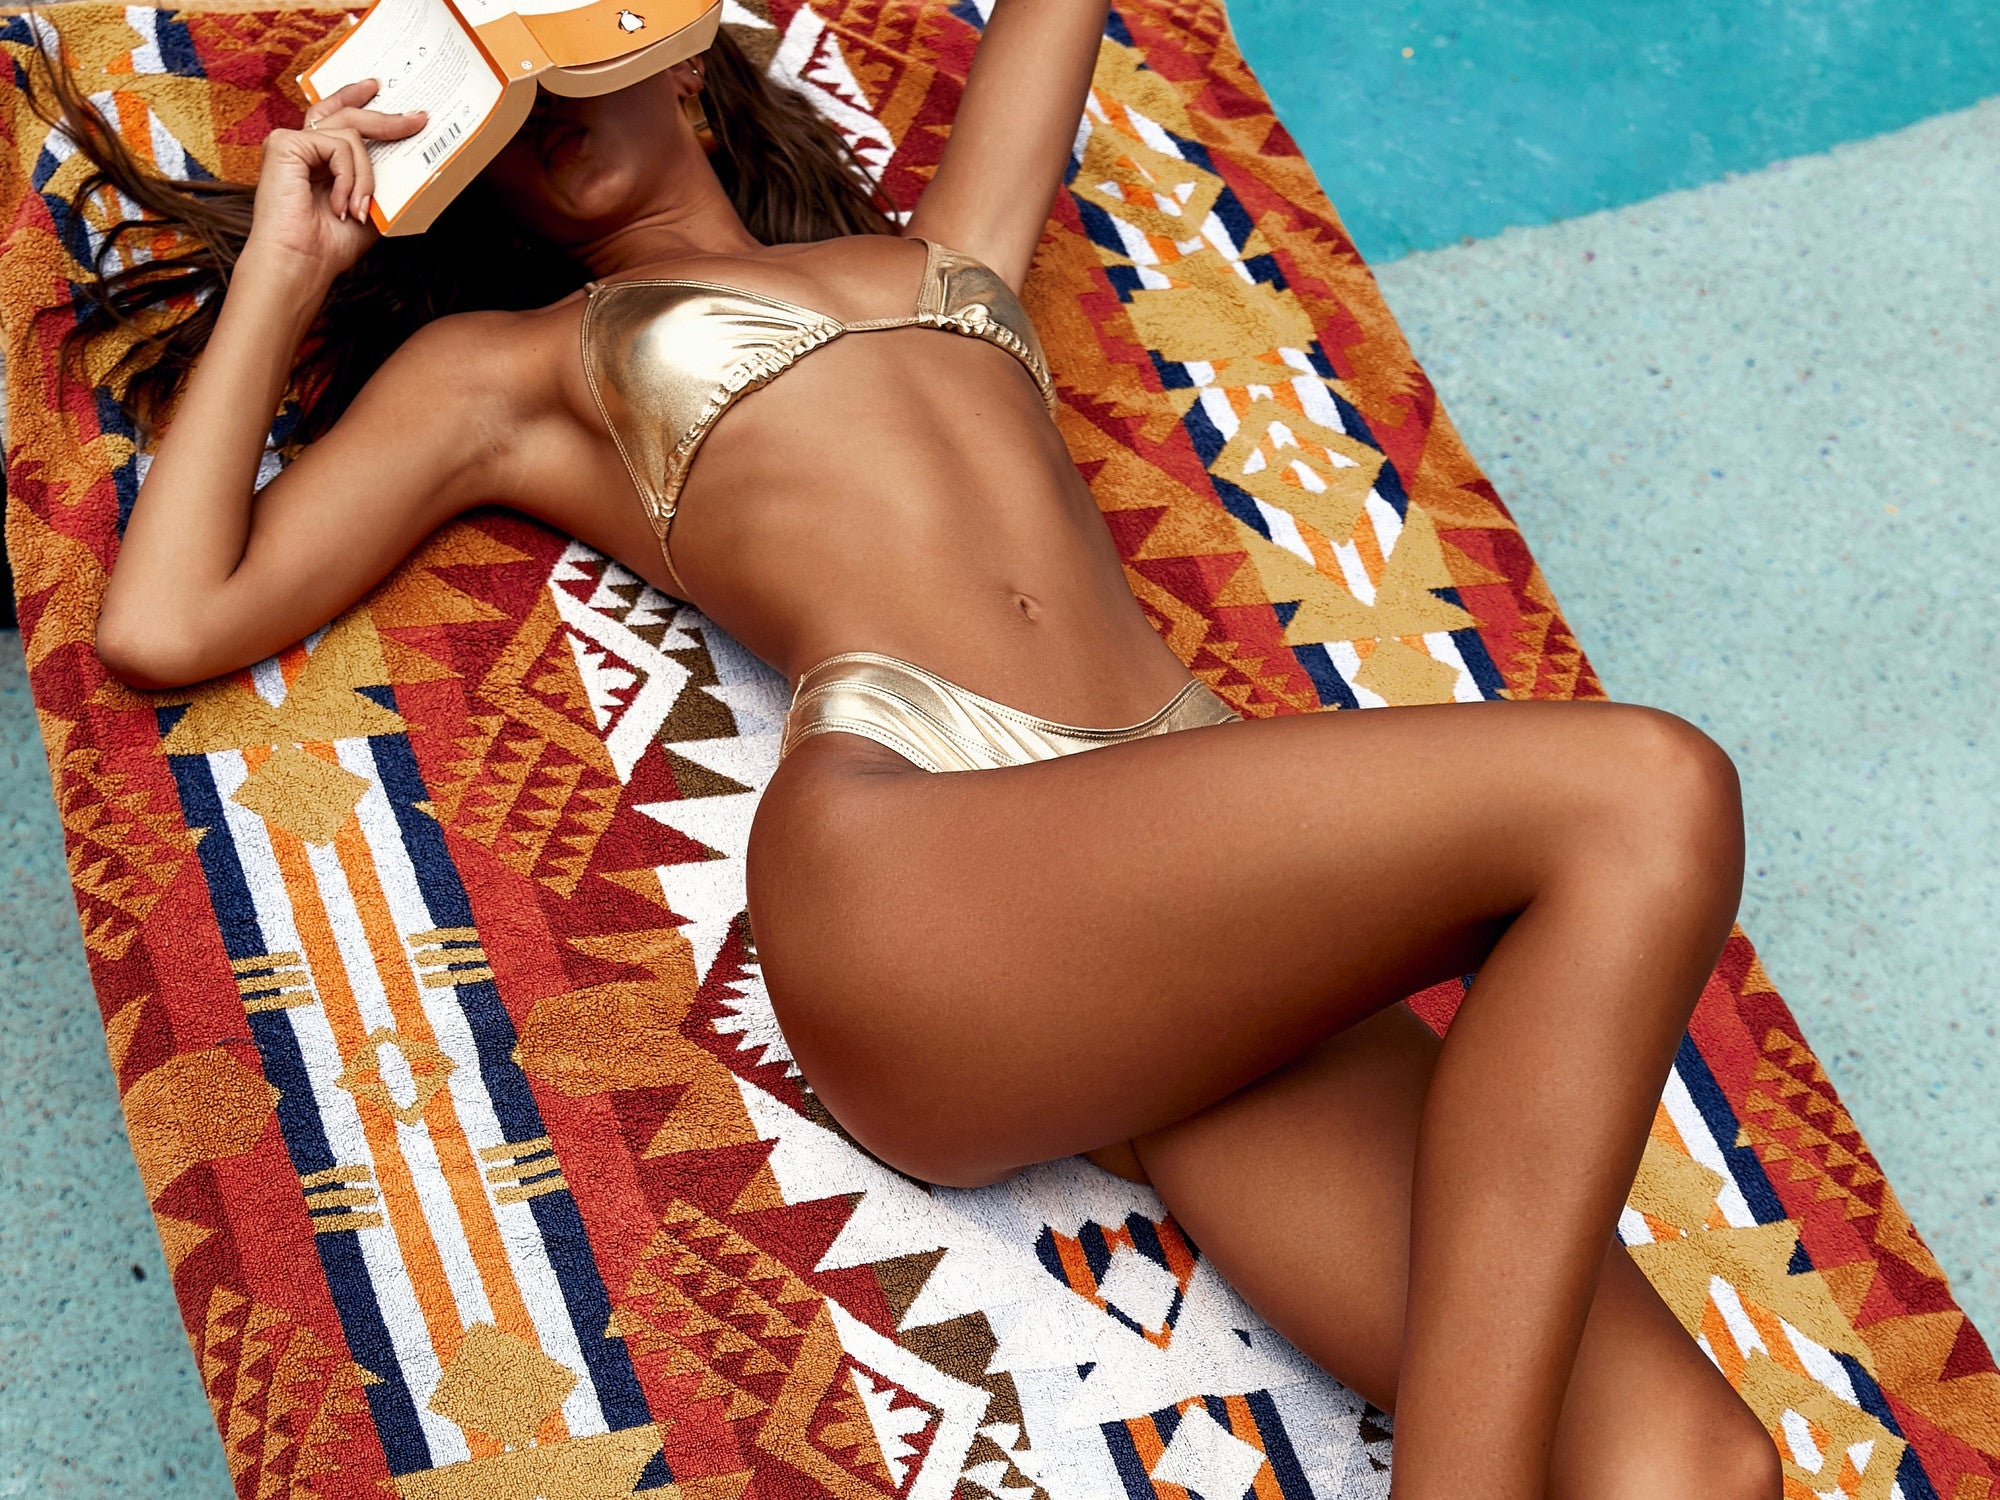 Isabelle Mathers wearing the Glam Gold Bikini Set while lying on a pool lounge chair